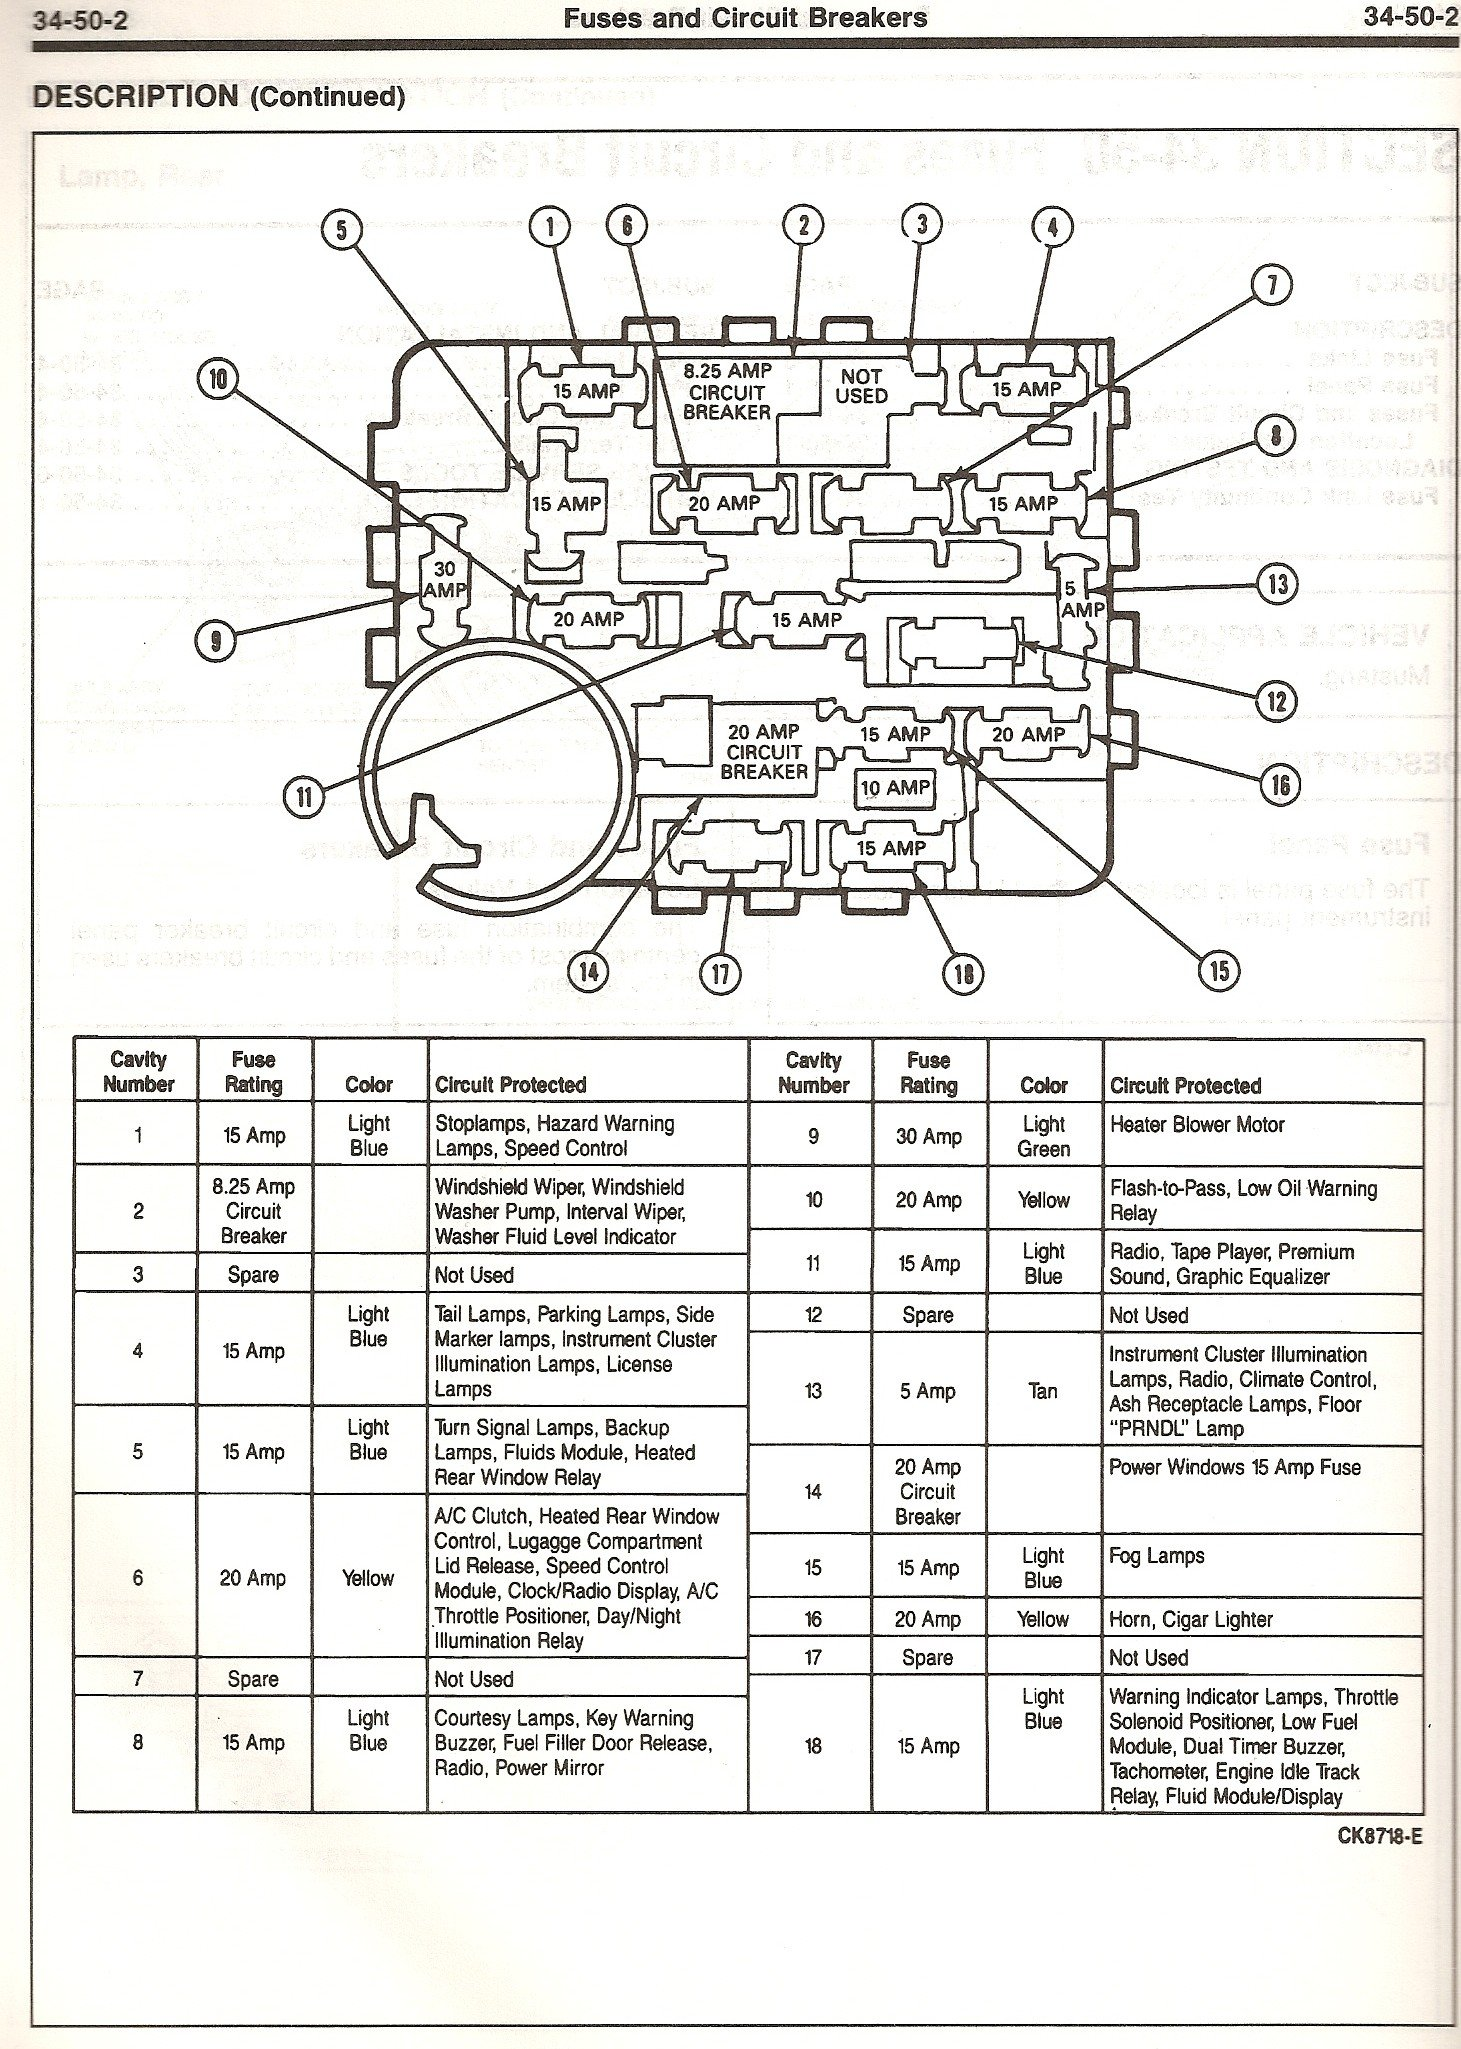 89 Mustang Fuse Diagram - Wiring Diagram User on polaris axis, polaris stingray, polaris mrzr-4, polaris trailer, polaris renegade, polaris electric, polaris roadster, polaris edge x, polaris electrical schematics, polaris street legal, polaris diagram, polaris adventure, polaris battery, polaris transmission, polaris raptor, polaris cycles, polaris truck, polaris ranger schematics,